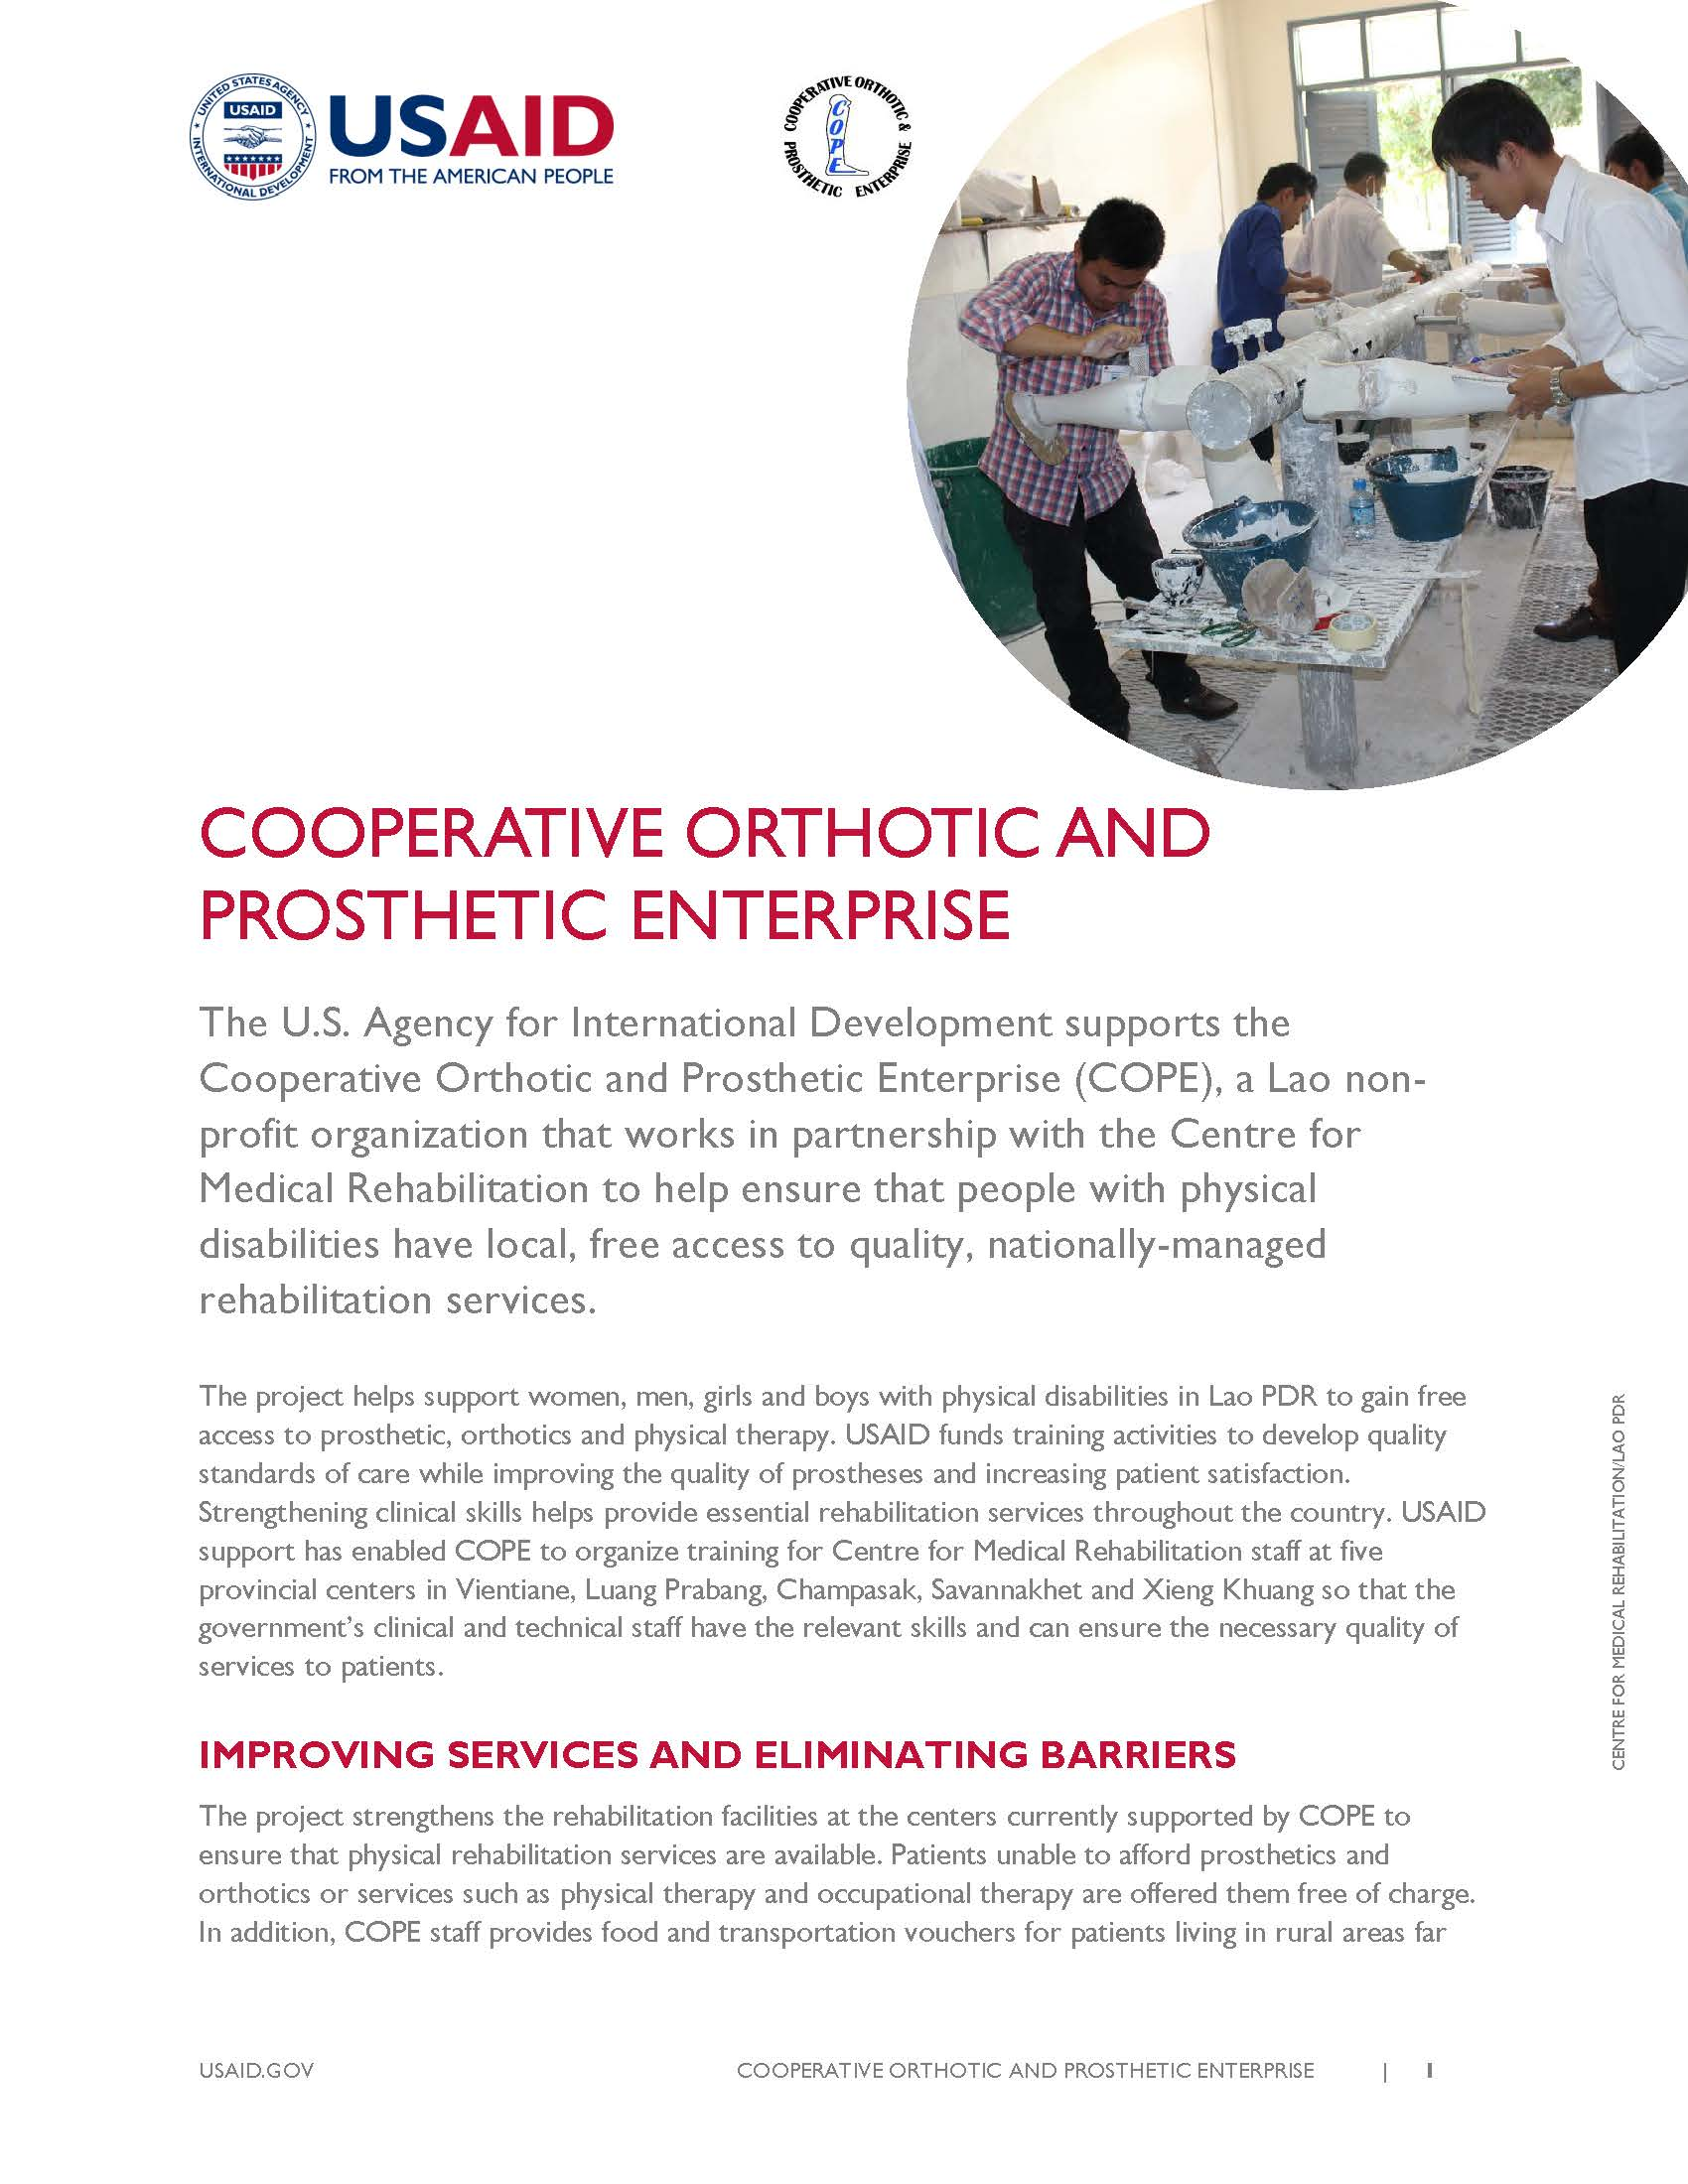 Cooperative Orthotic and Prosthetic Enterprise